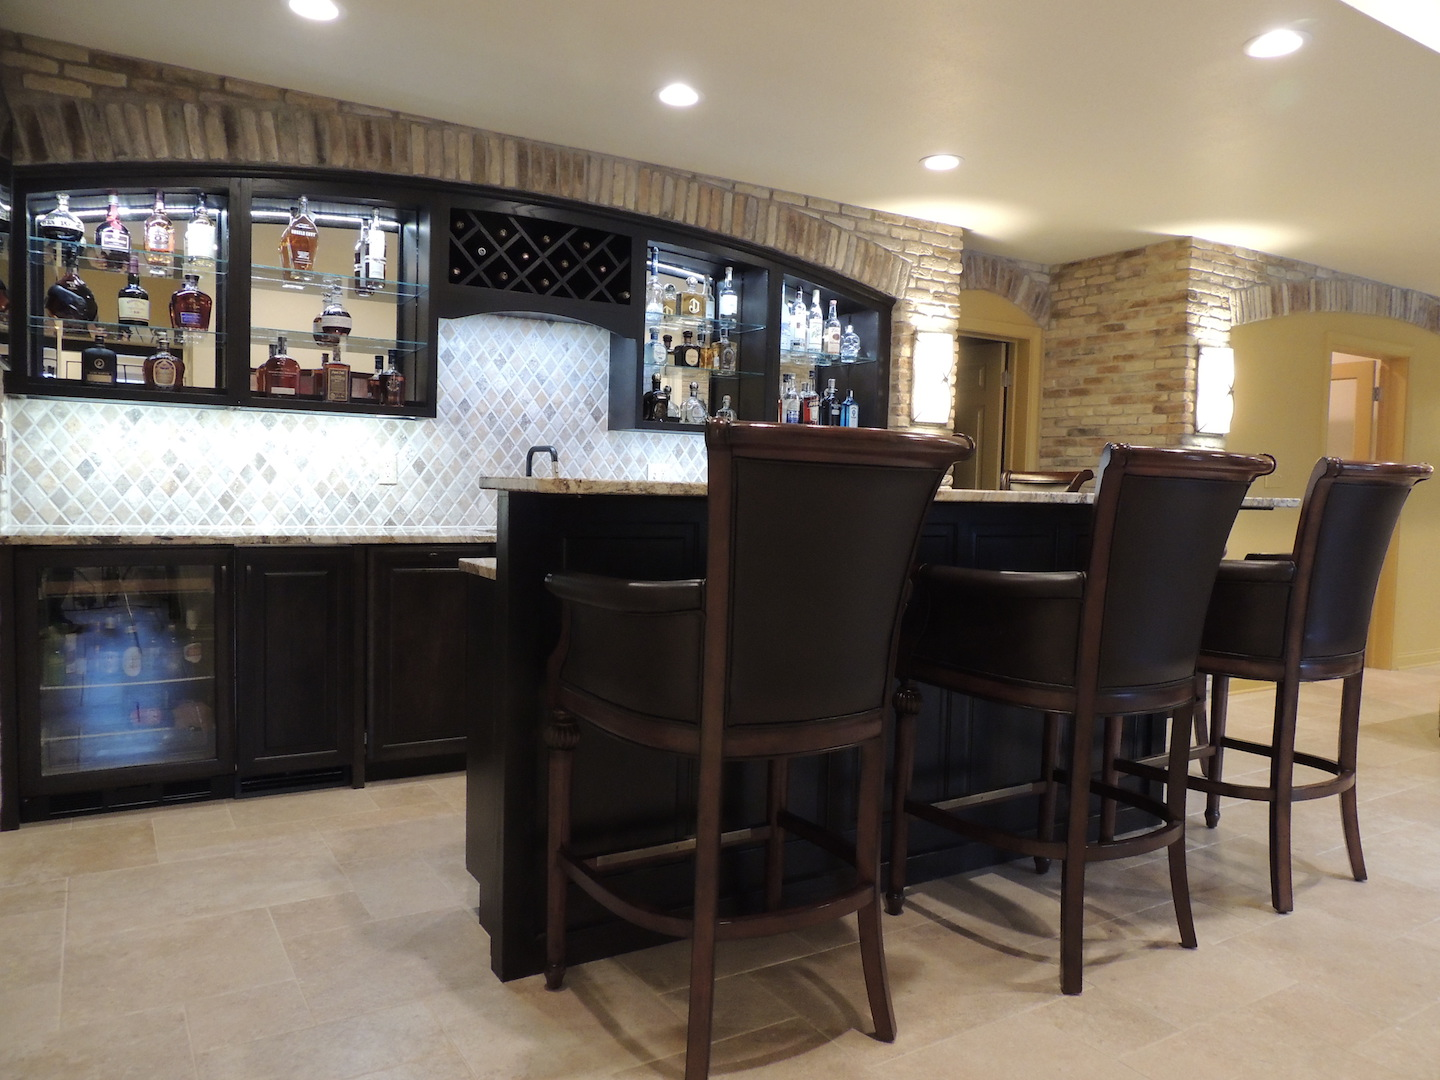 Basement Remodel Projects Indianapolis Remodeling Contractor Kitchen Remodeling Room Additions Custom Home Building Whole House Renovations